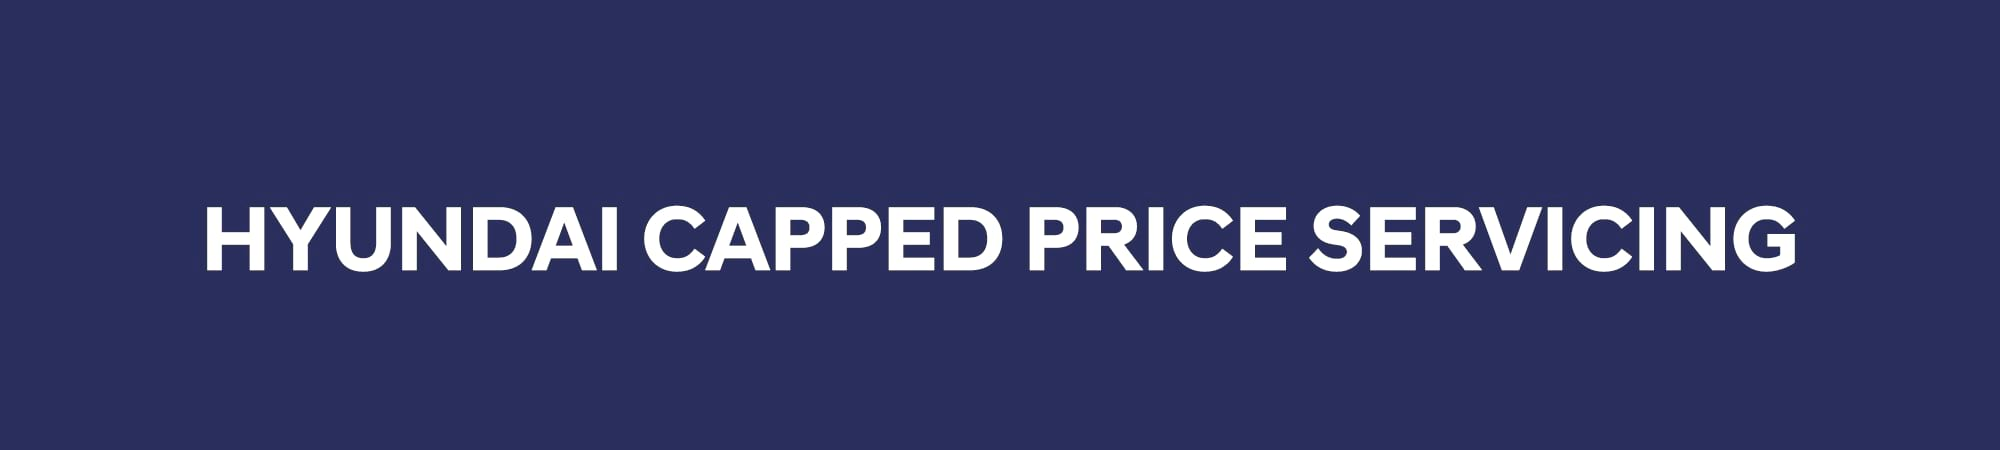 Hyundai Capped Price Servicing